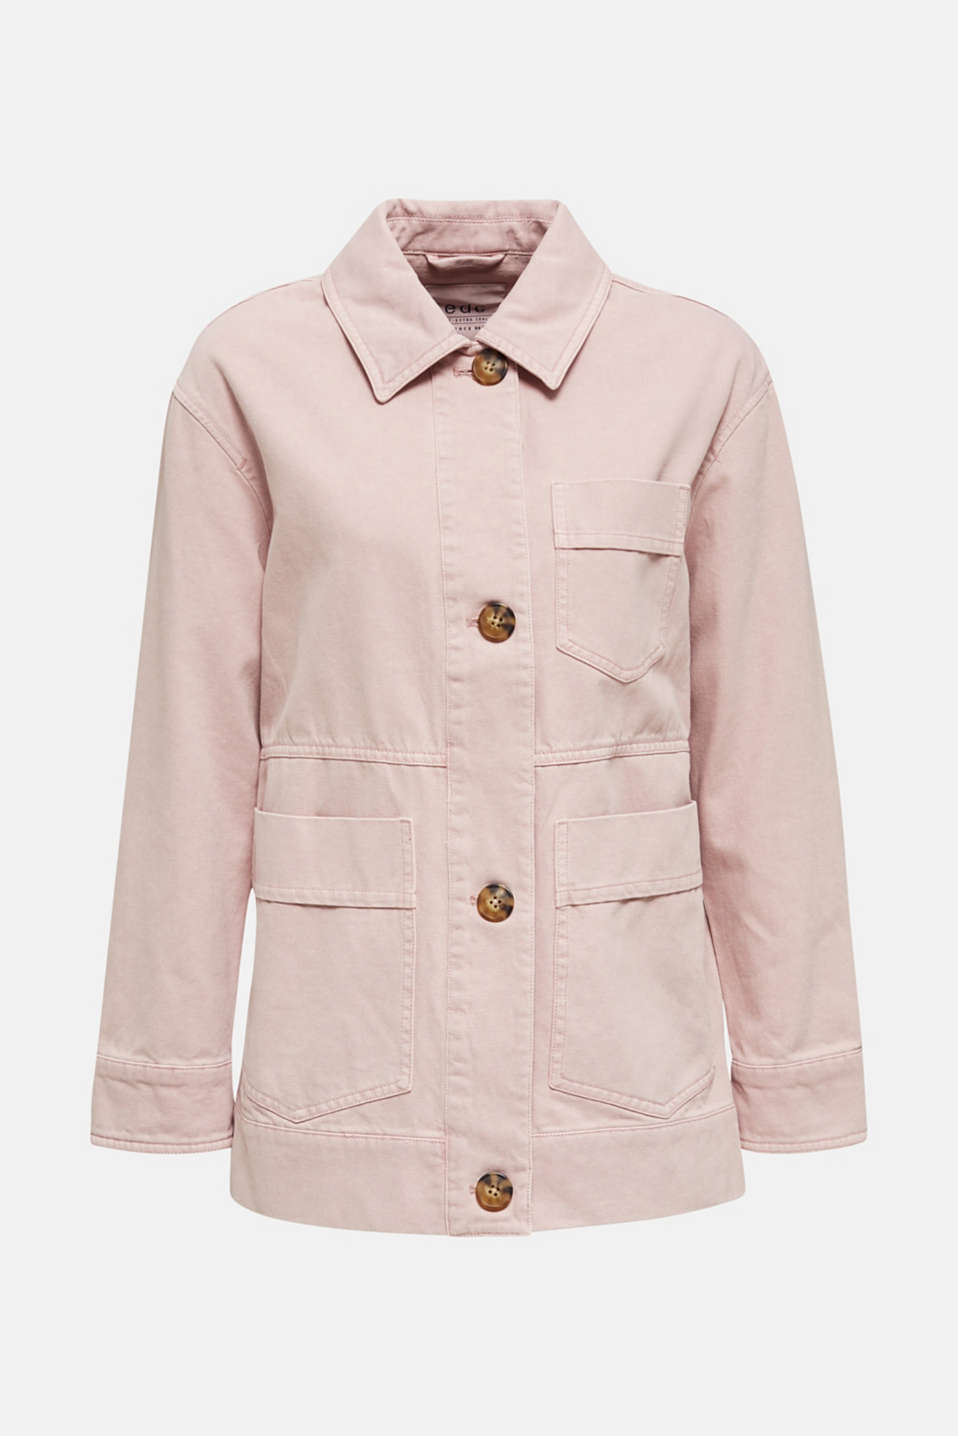 Worker jacket with pockets, 100% cotton, BLUSH, detail image number 6